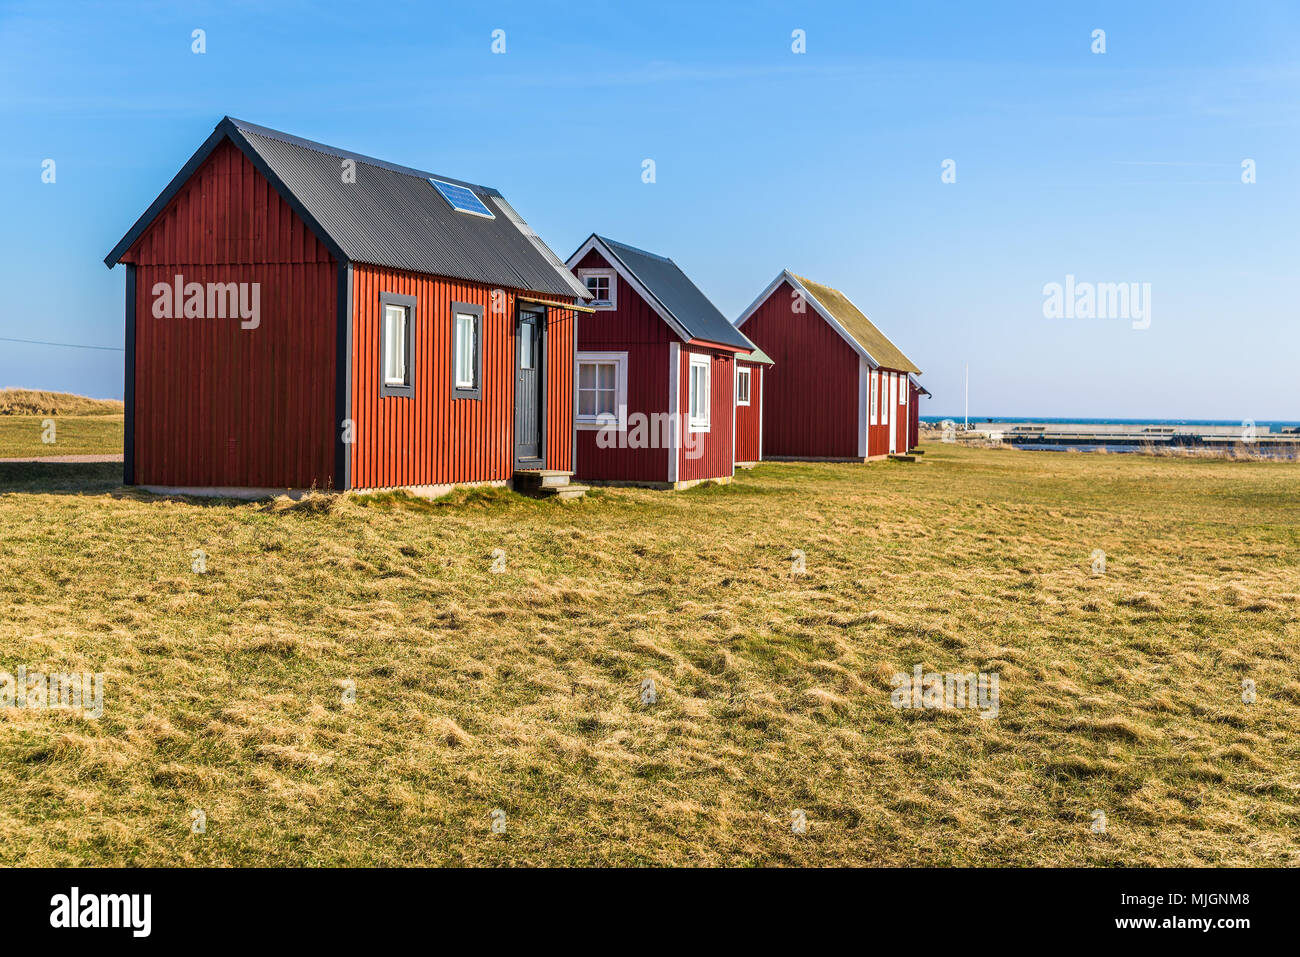 Kapelludden On Oland Sweden Red Wooden Fishing Cabins In A